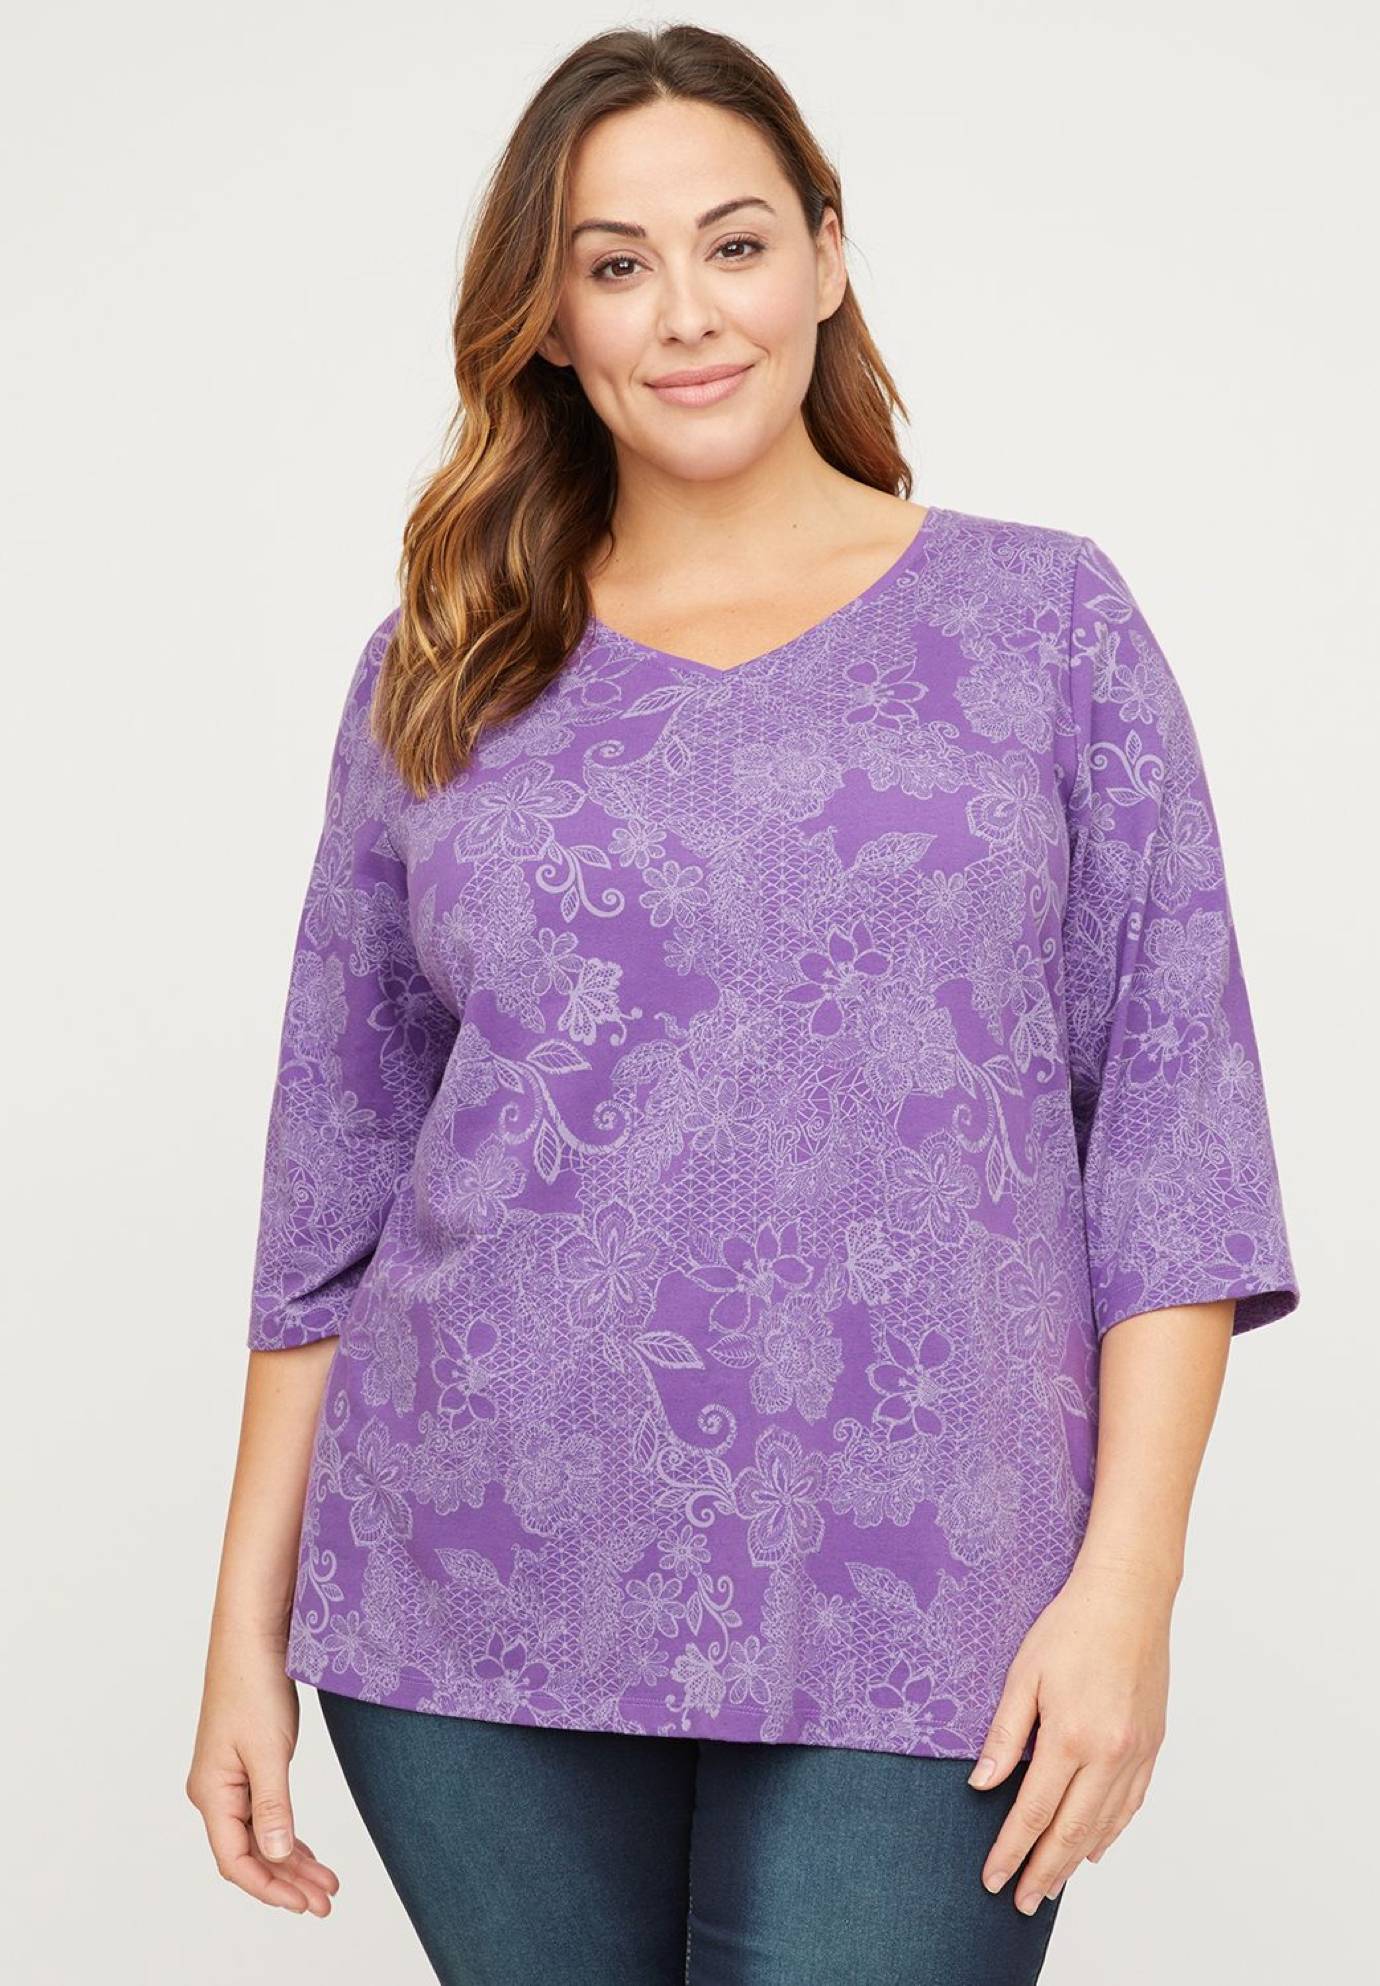 Flowering Lace Top,